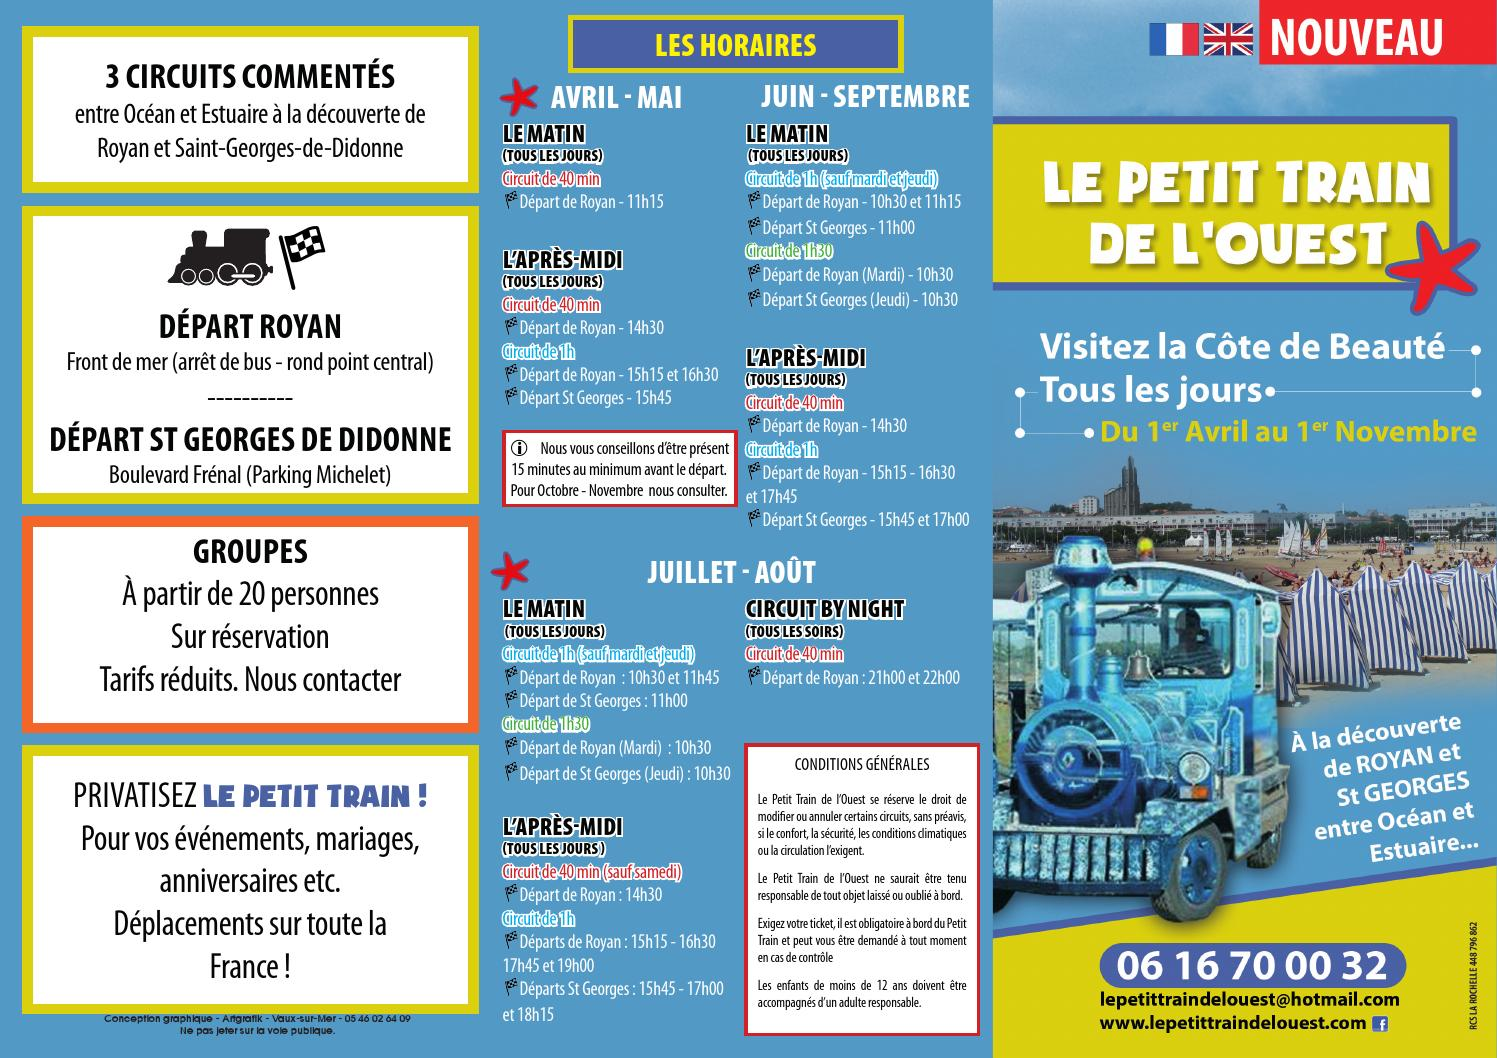 Le petit train de royan st georges 2015 by office de - Office de tourisme st georges de didonne ...